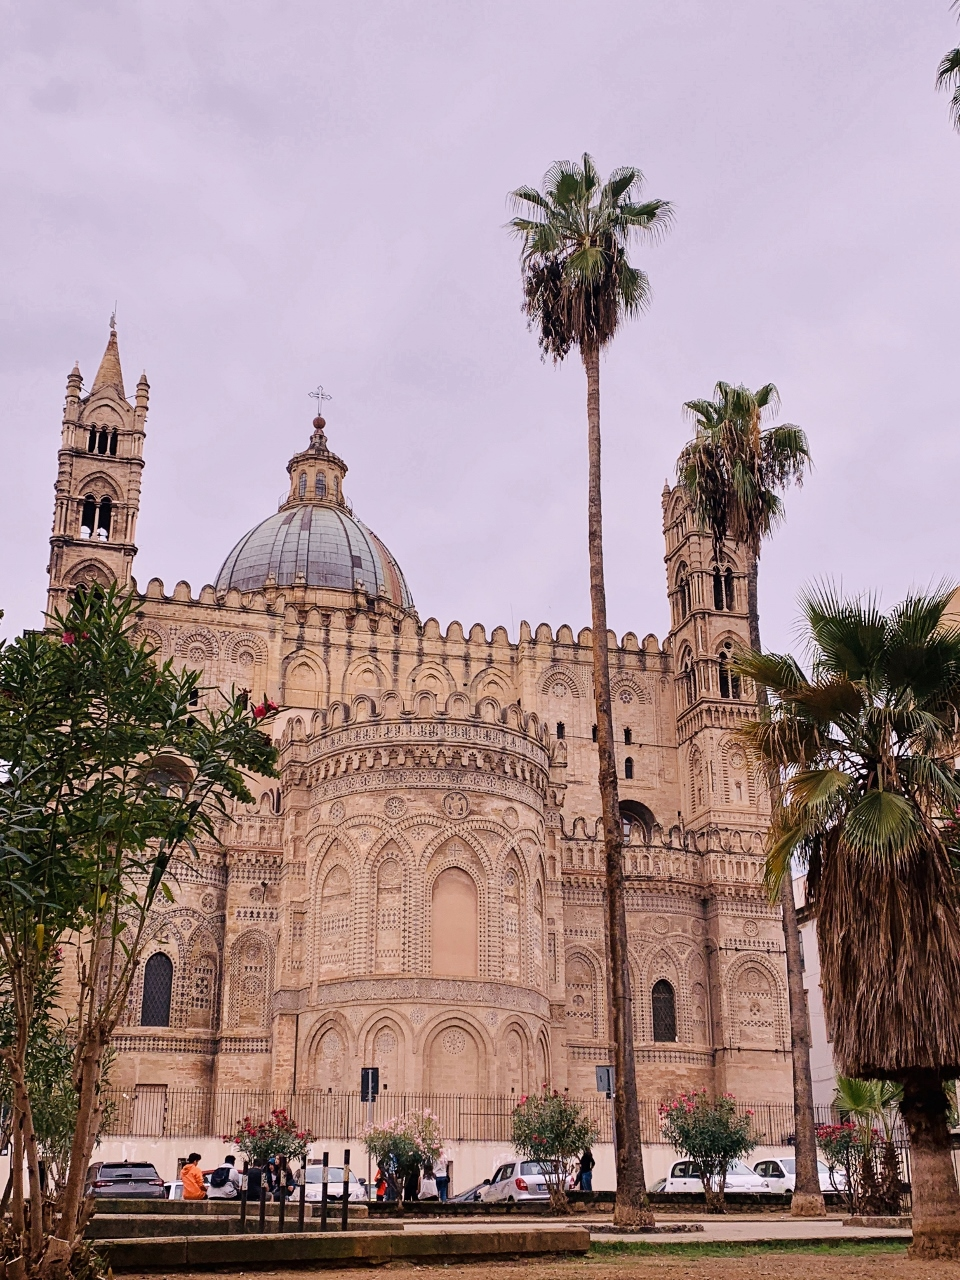 Travels to Sicily – Palermo & Monreale (Part 3 of 3) Image 1